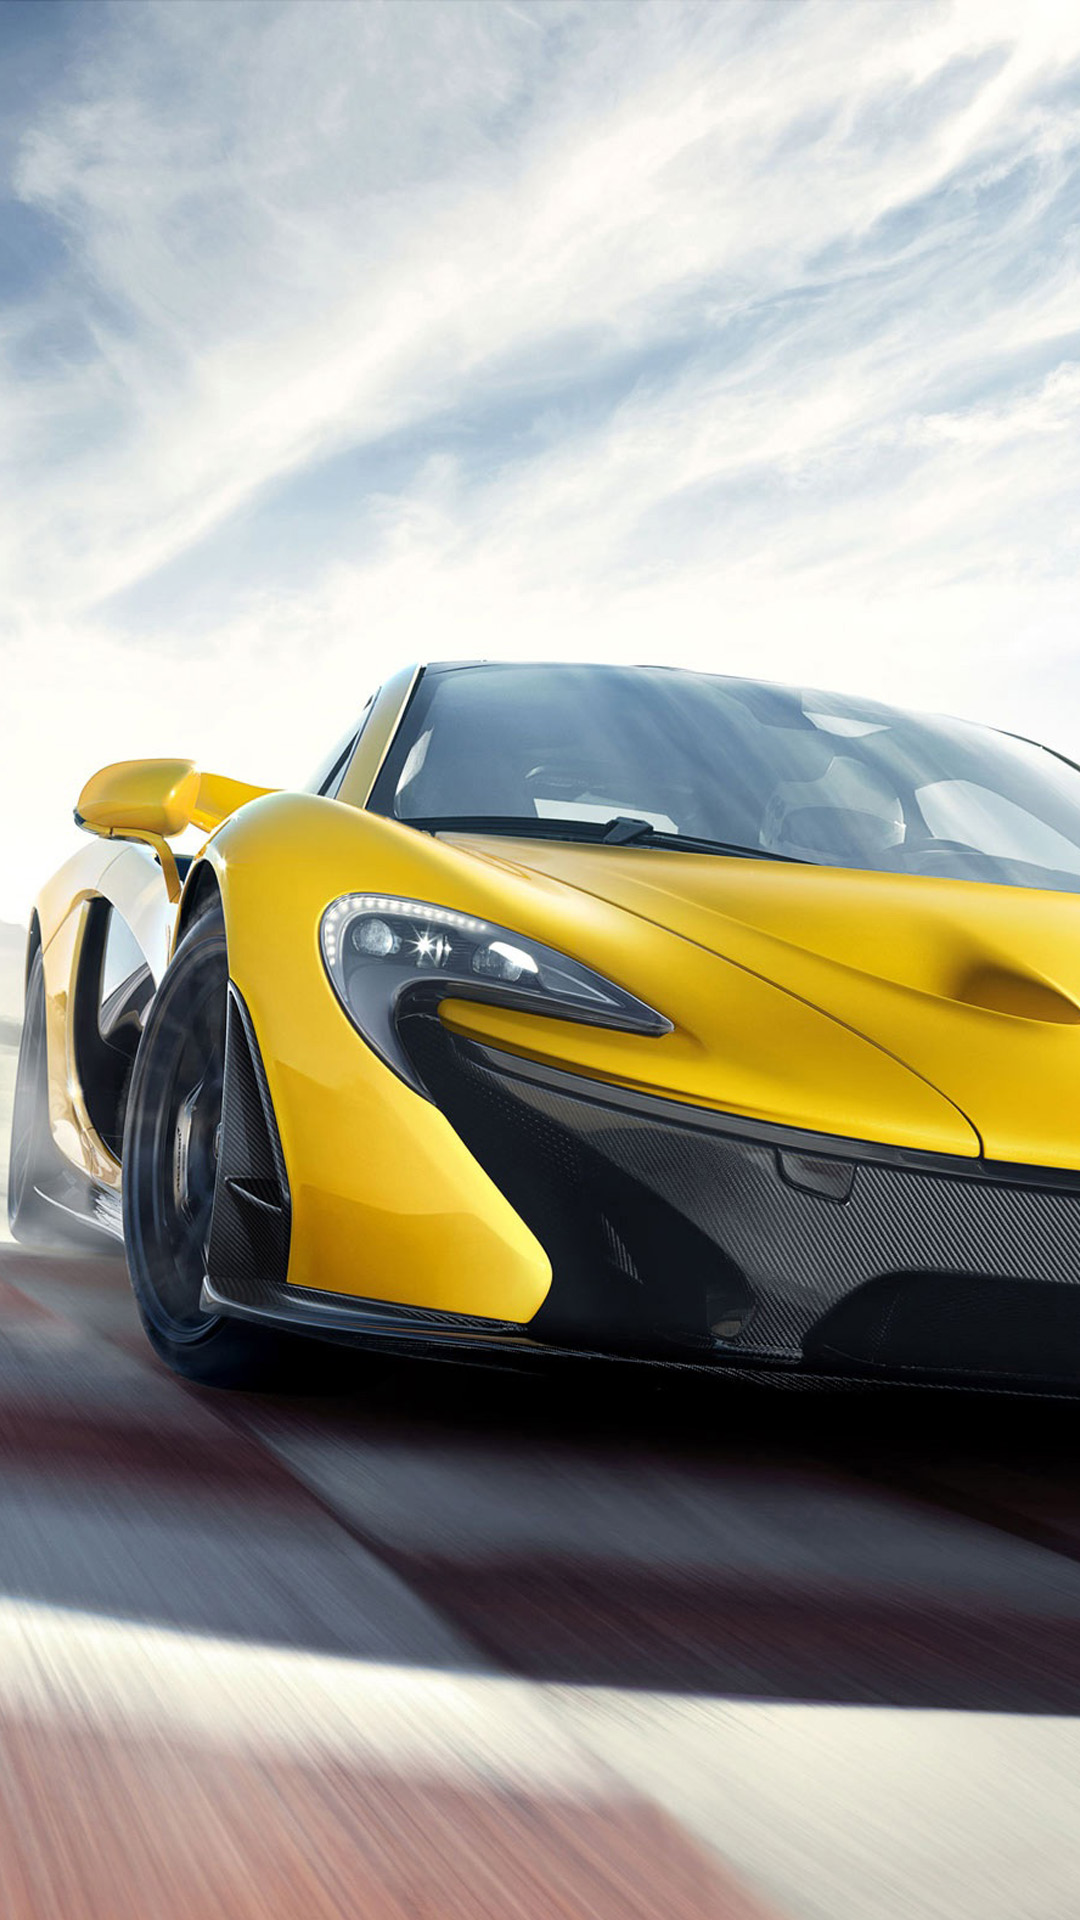 McLaren P1 2014 Best Htc One Wallpapers Free And Easy To Download